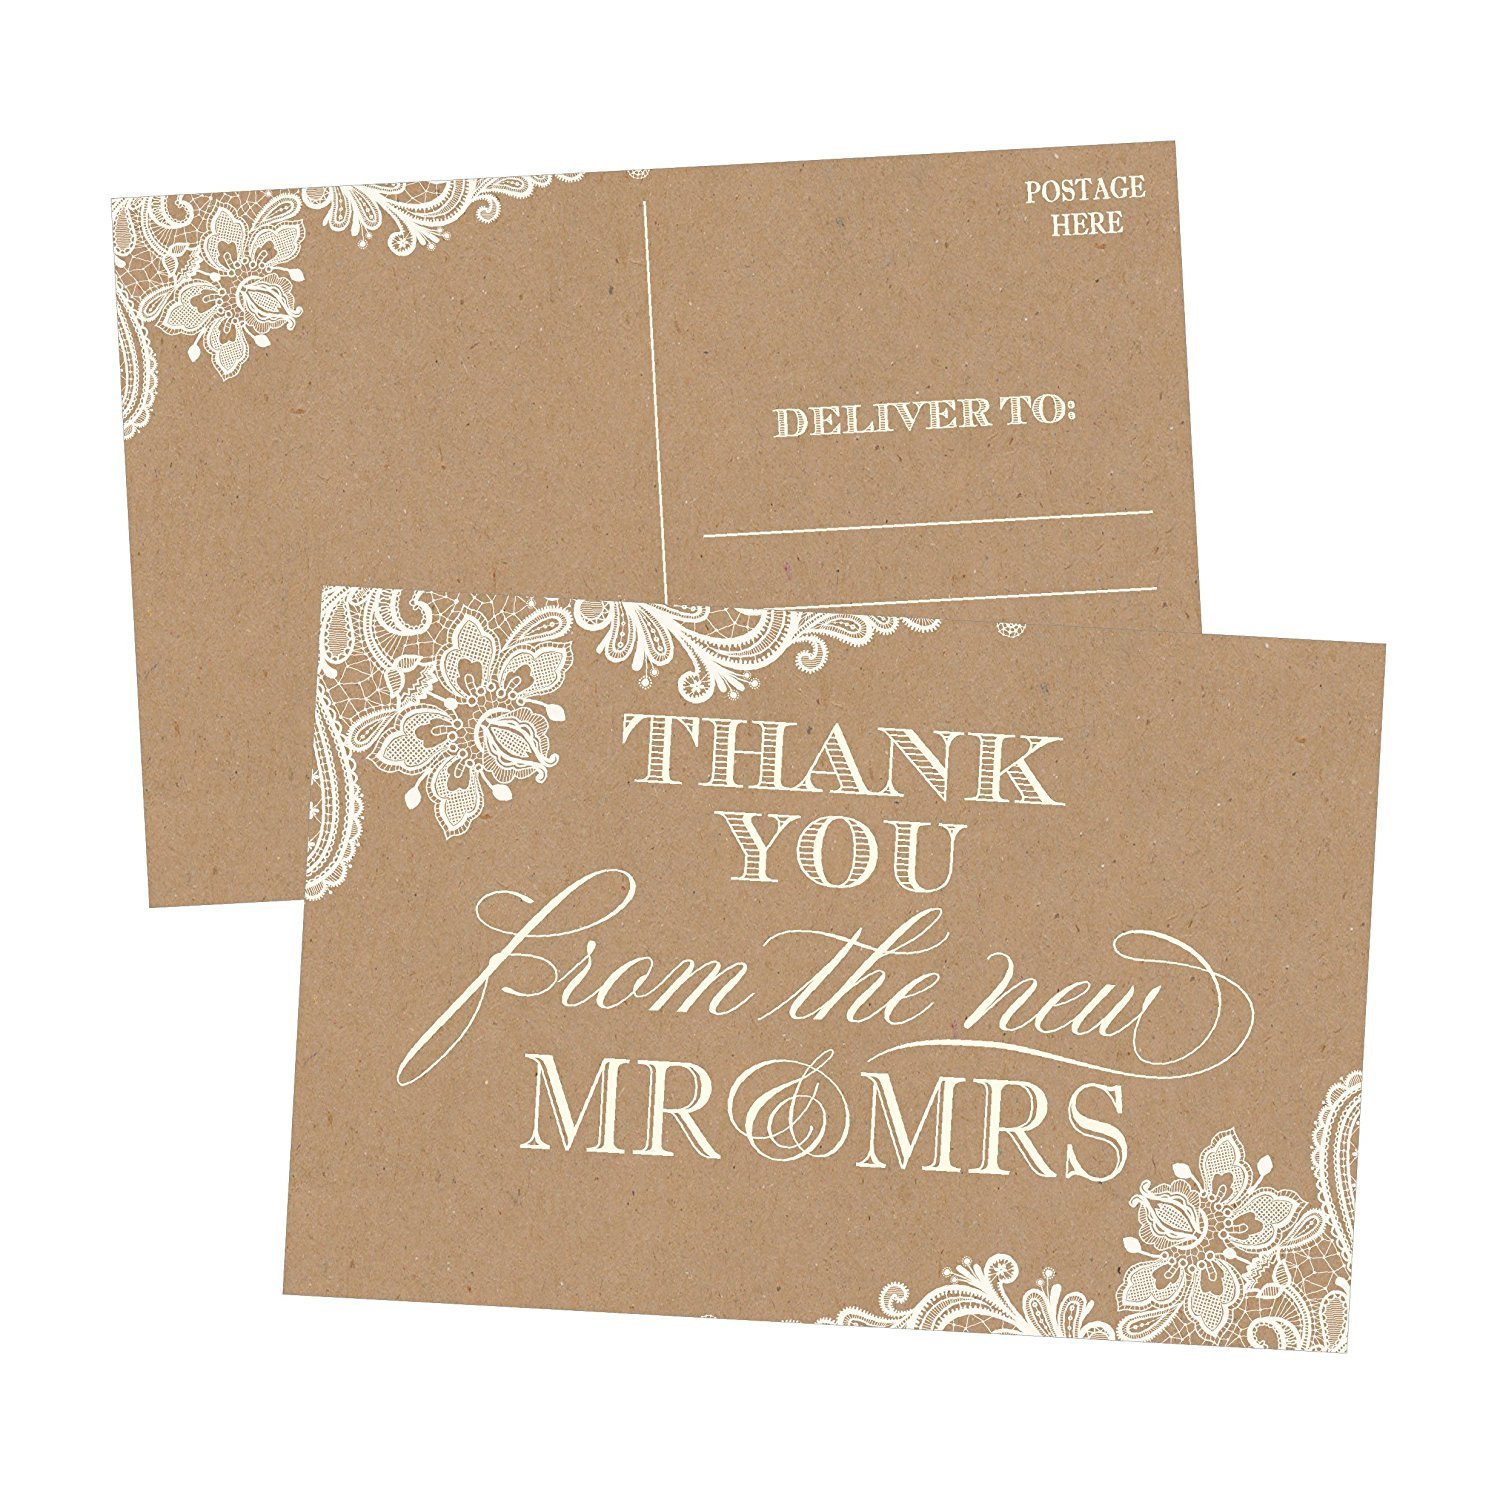 Wedding Day Cards Thank you cards wedding Thank You Wedding Card Thank You Card Wedding Cards Bridal Shower Thank You cards